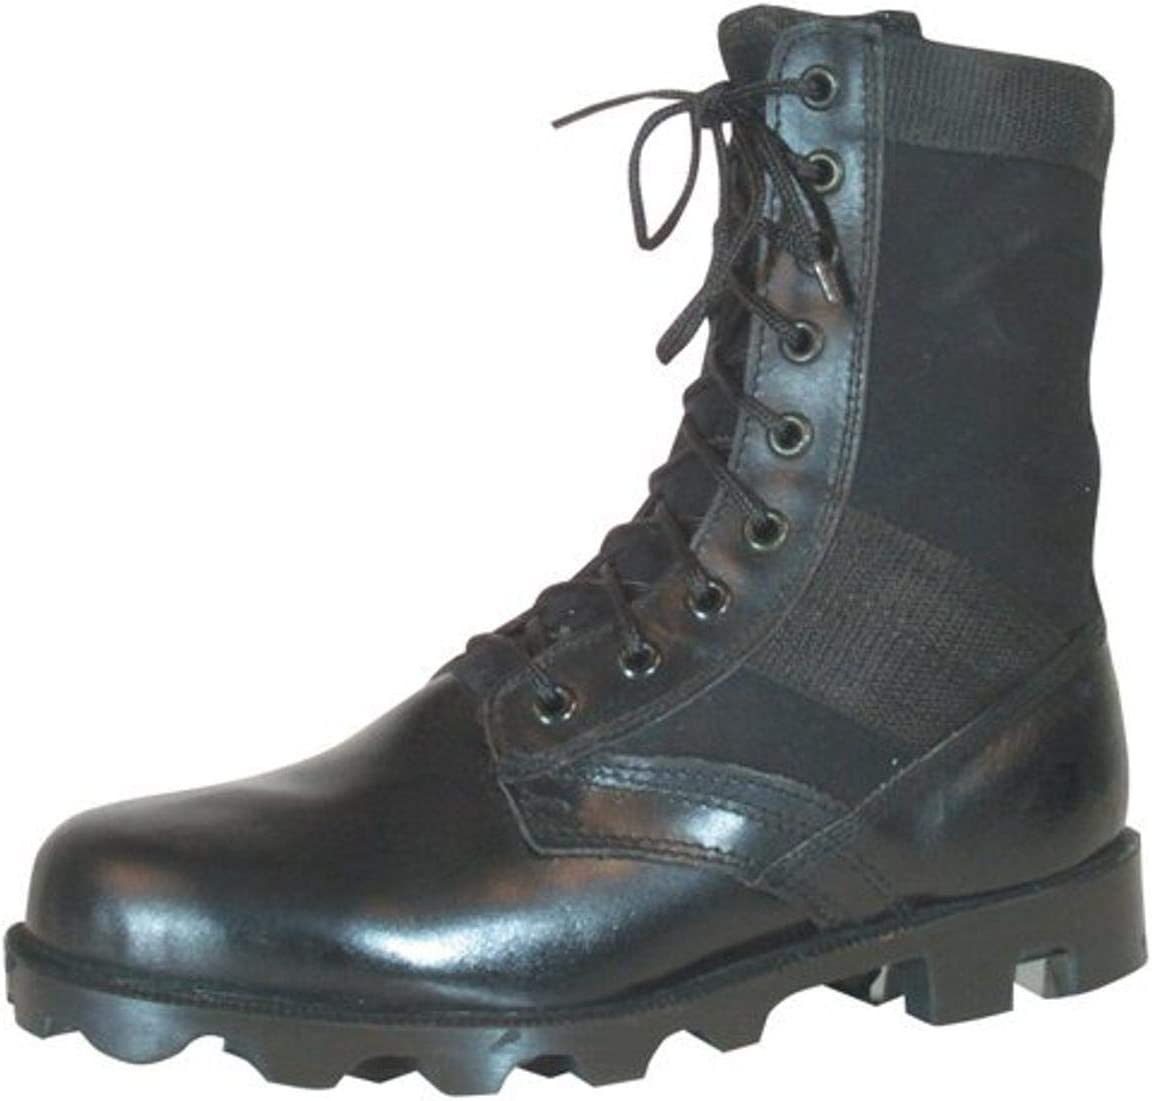 Fox Outdoor Products Vietnam Jungle Wide Boot